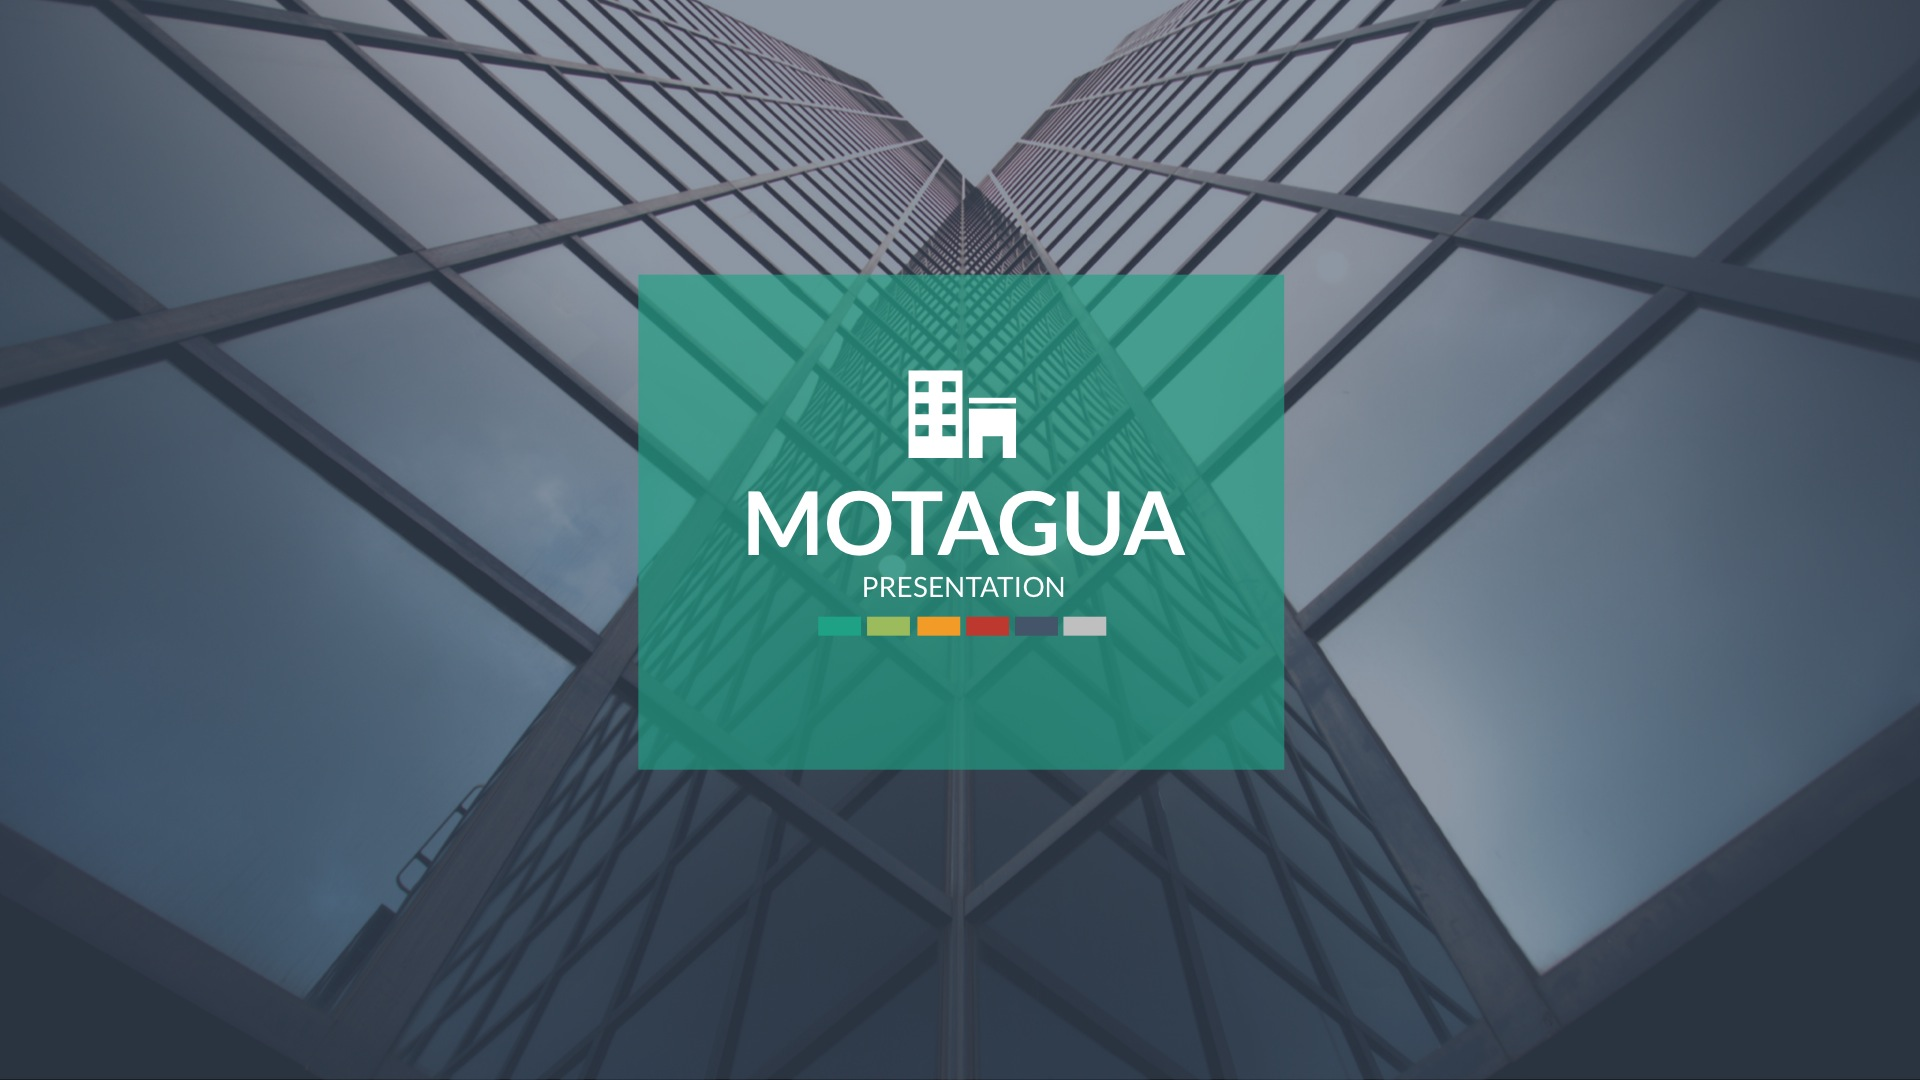 10 powerpoint business templates to wow your audience the multipurpose powerpoint business template from motagua flashek Images